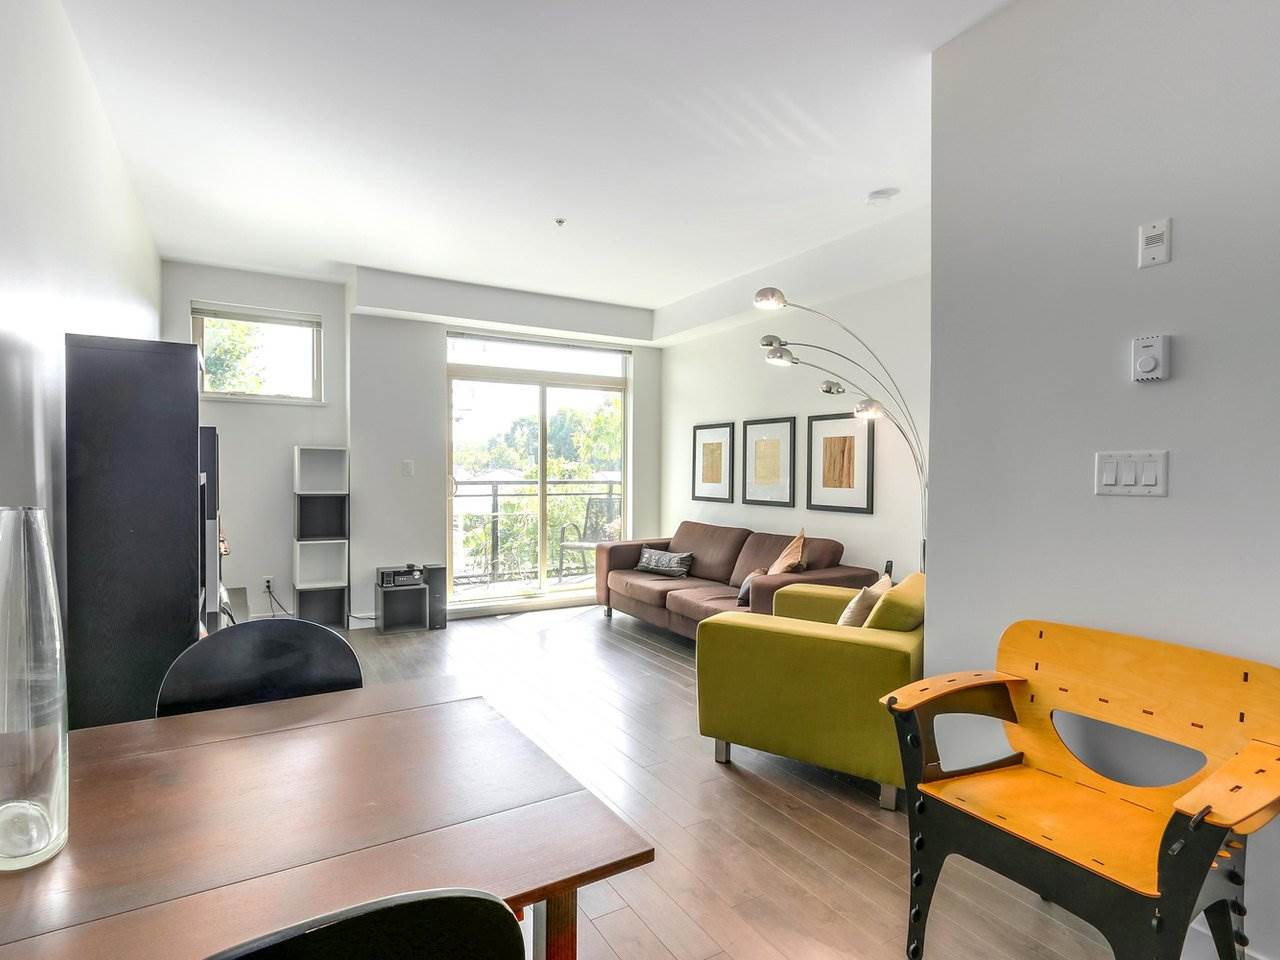 Condo Apartment at 309 707 E 20TH AVENUE, Unit 309, Vancouver East, British Columbia. Image 6